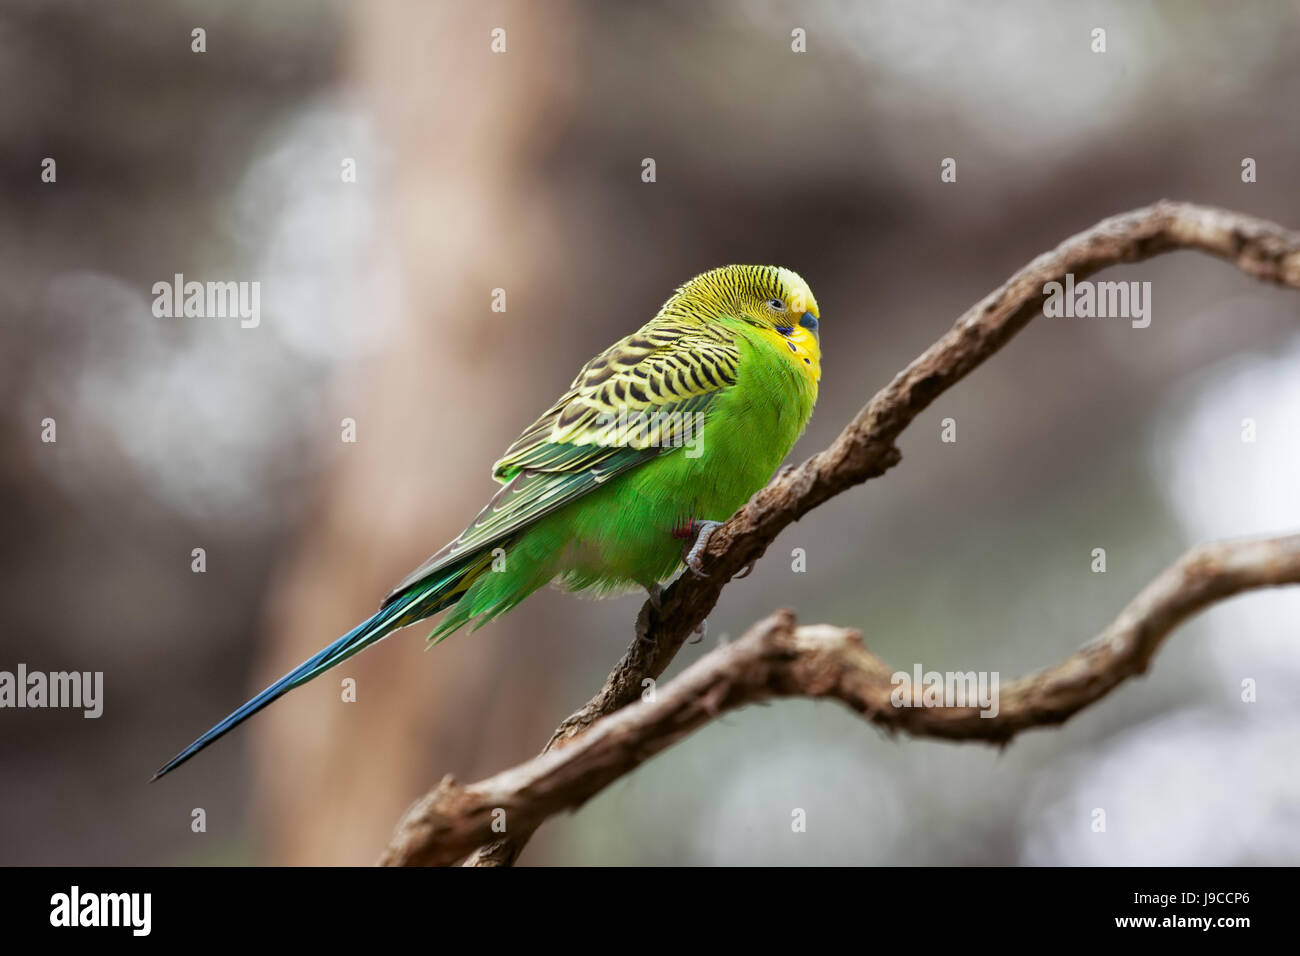 Budgerigar - song parrot perching on tree branch closeup - Stock Image